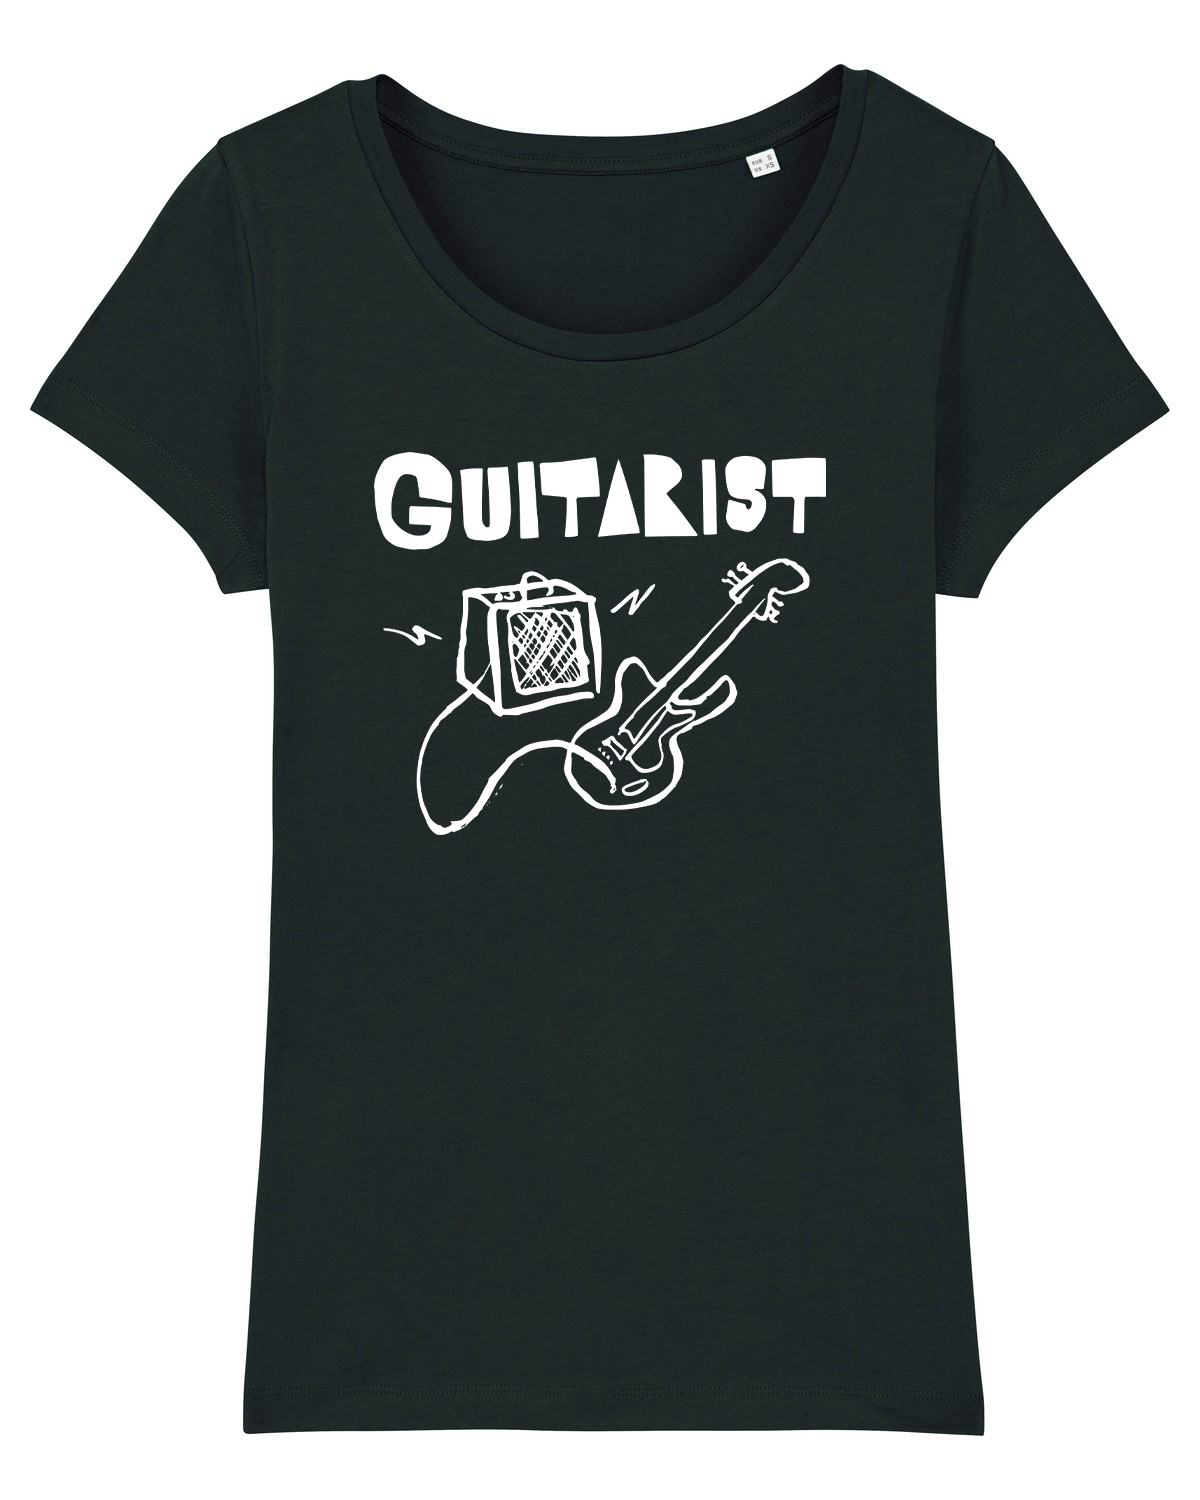 'Guitarist' Organic Womens T-shirt